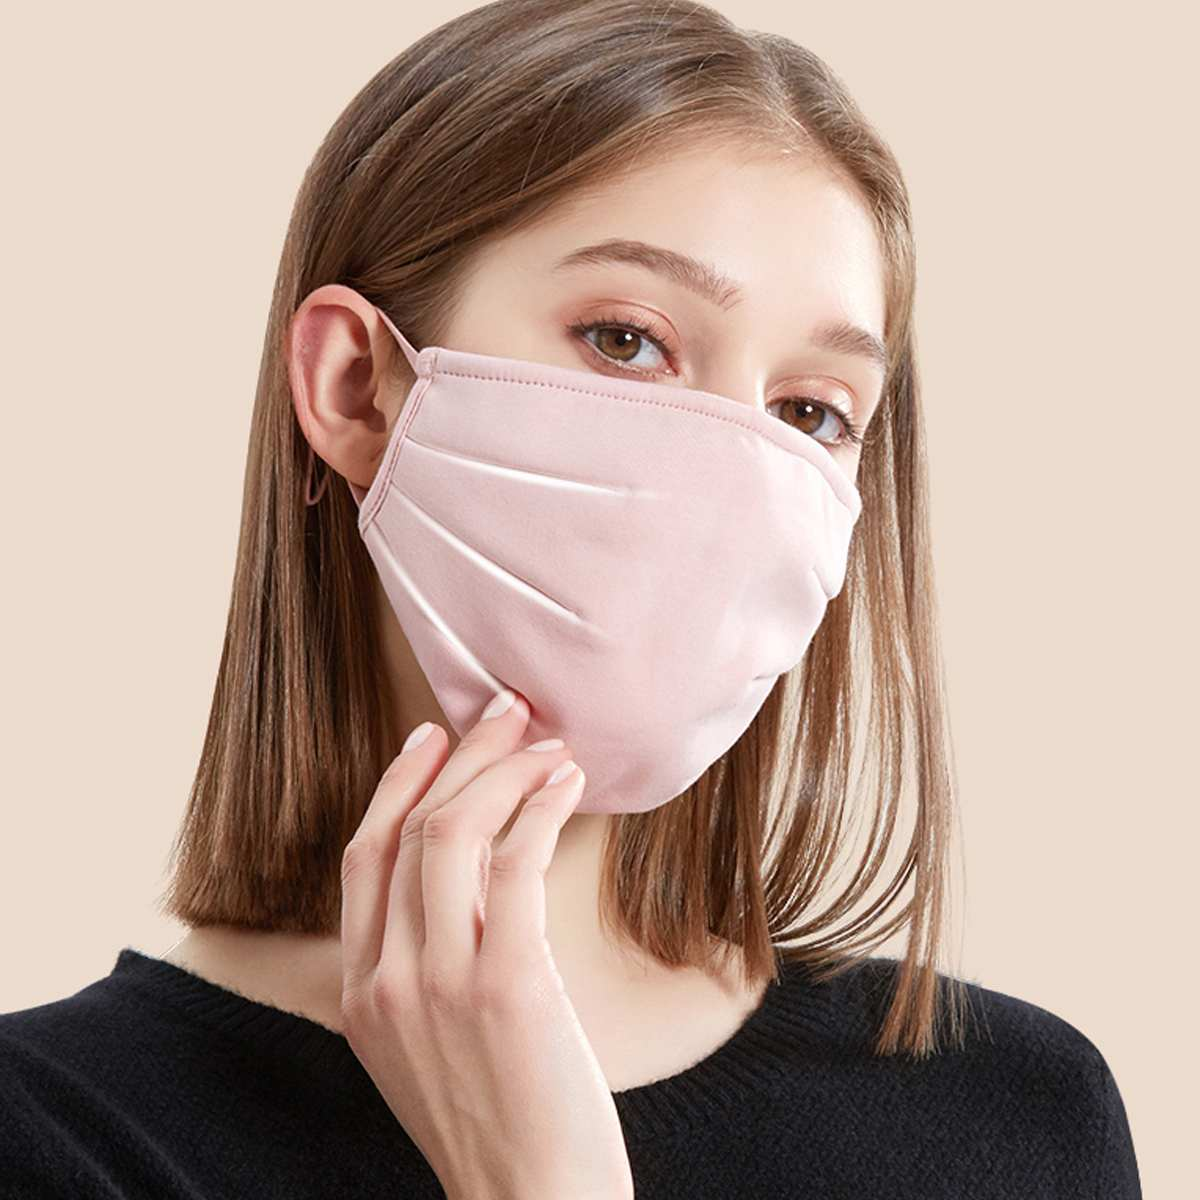 Black Face Mask Anti PM2.5 Air Pollution Mouth Face Mask Anti Dust Washed Reusable Masks Men Women 1